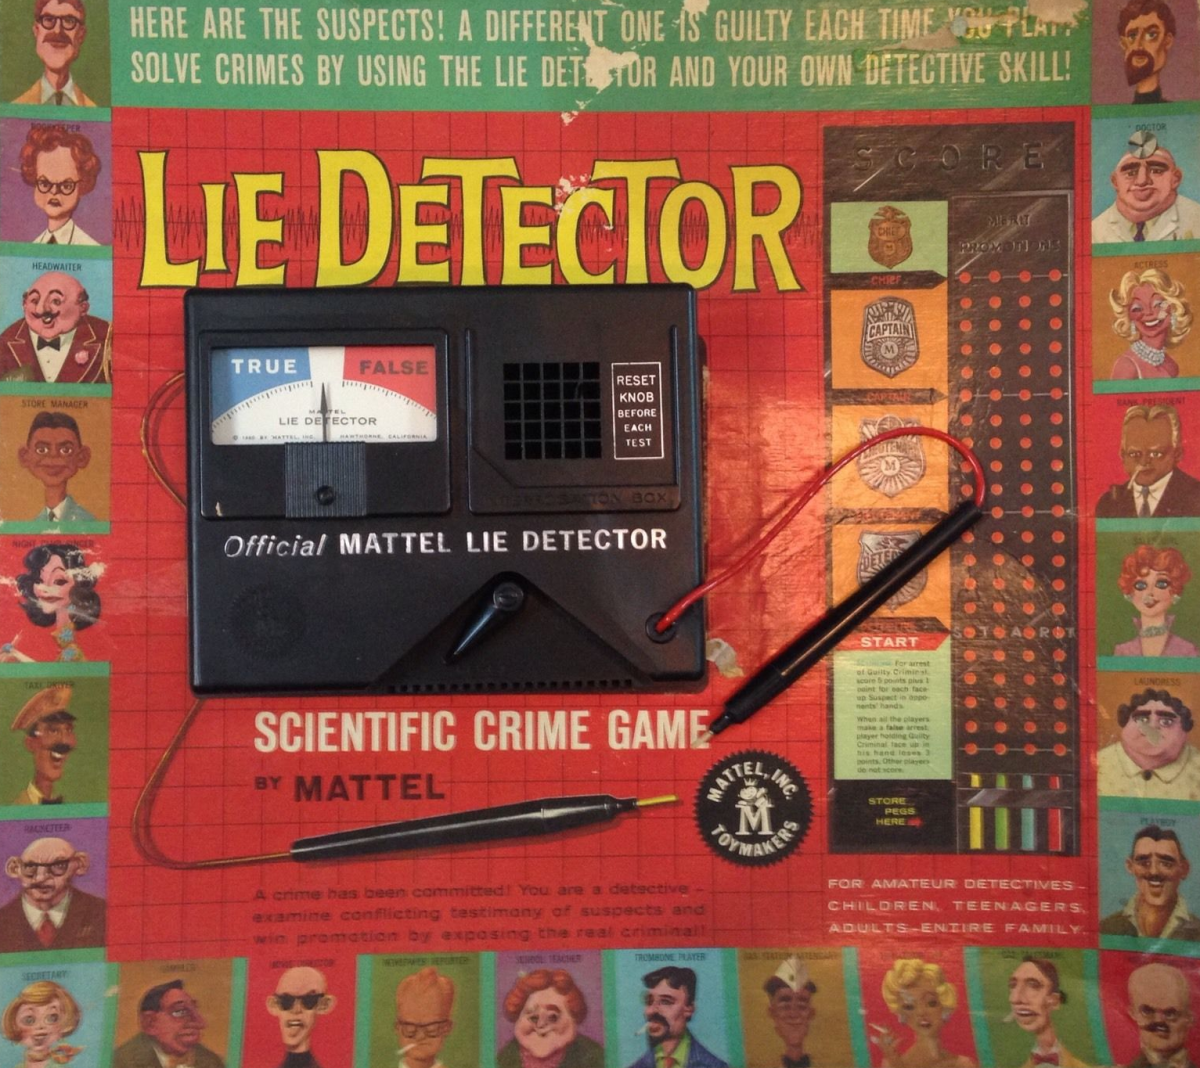 Cover art for the Lie Detector Game.